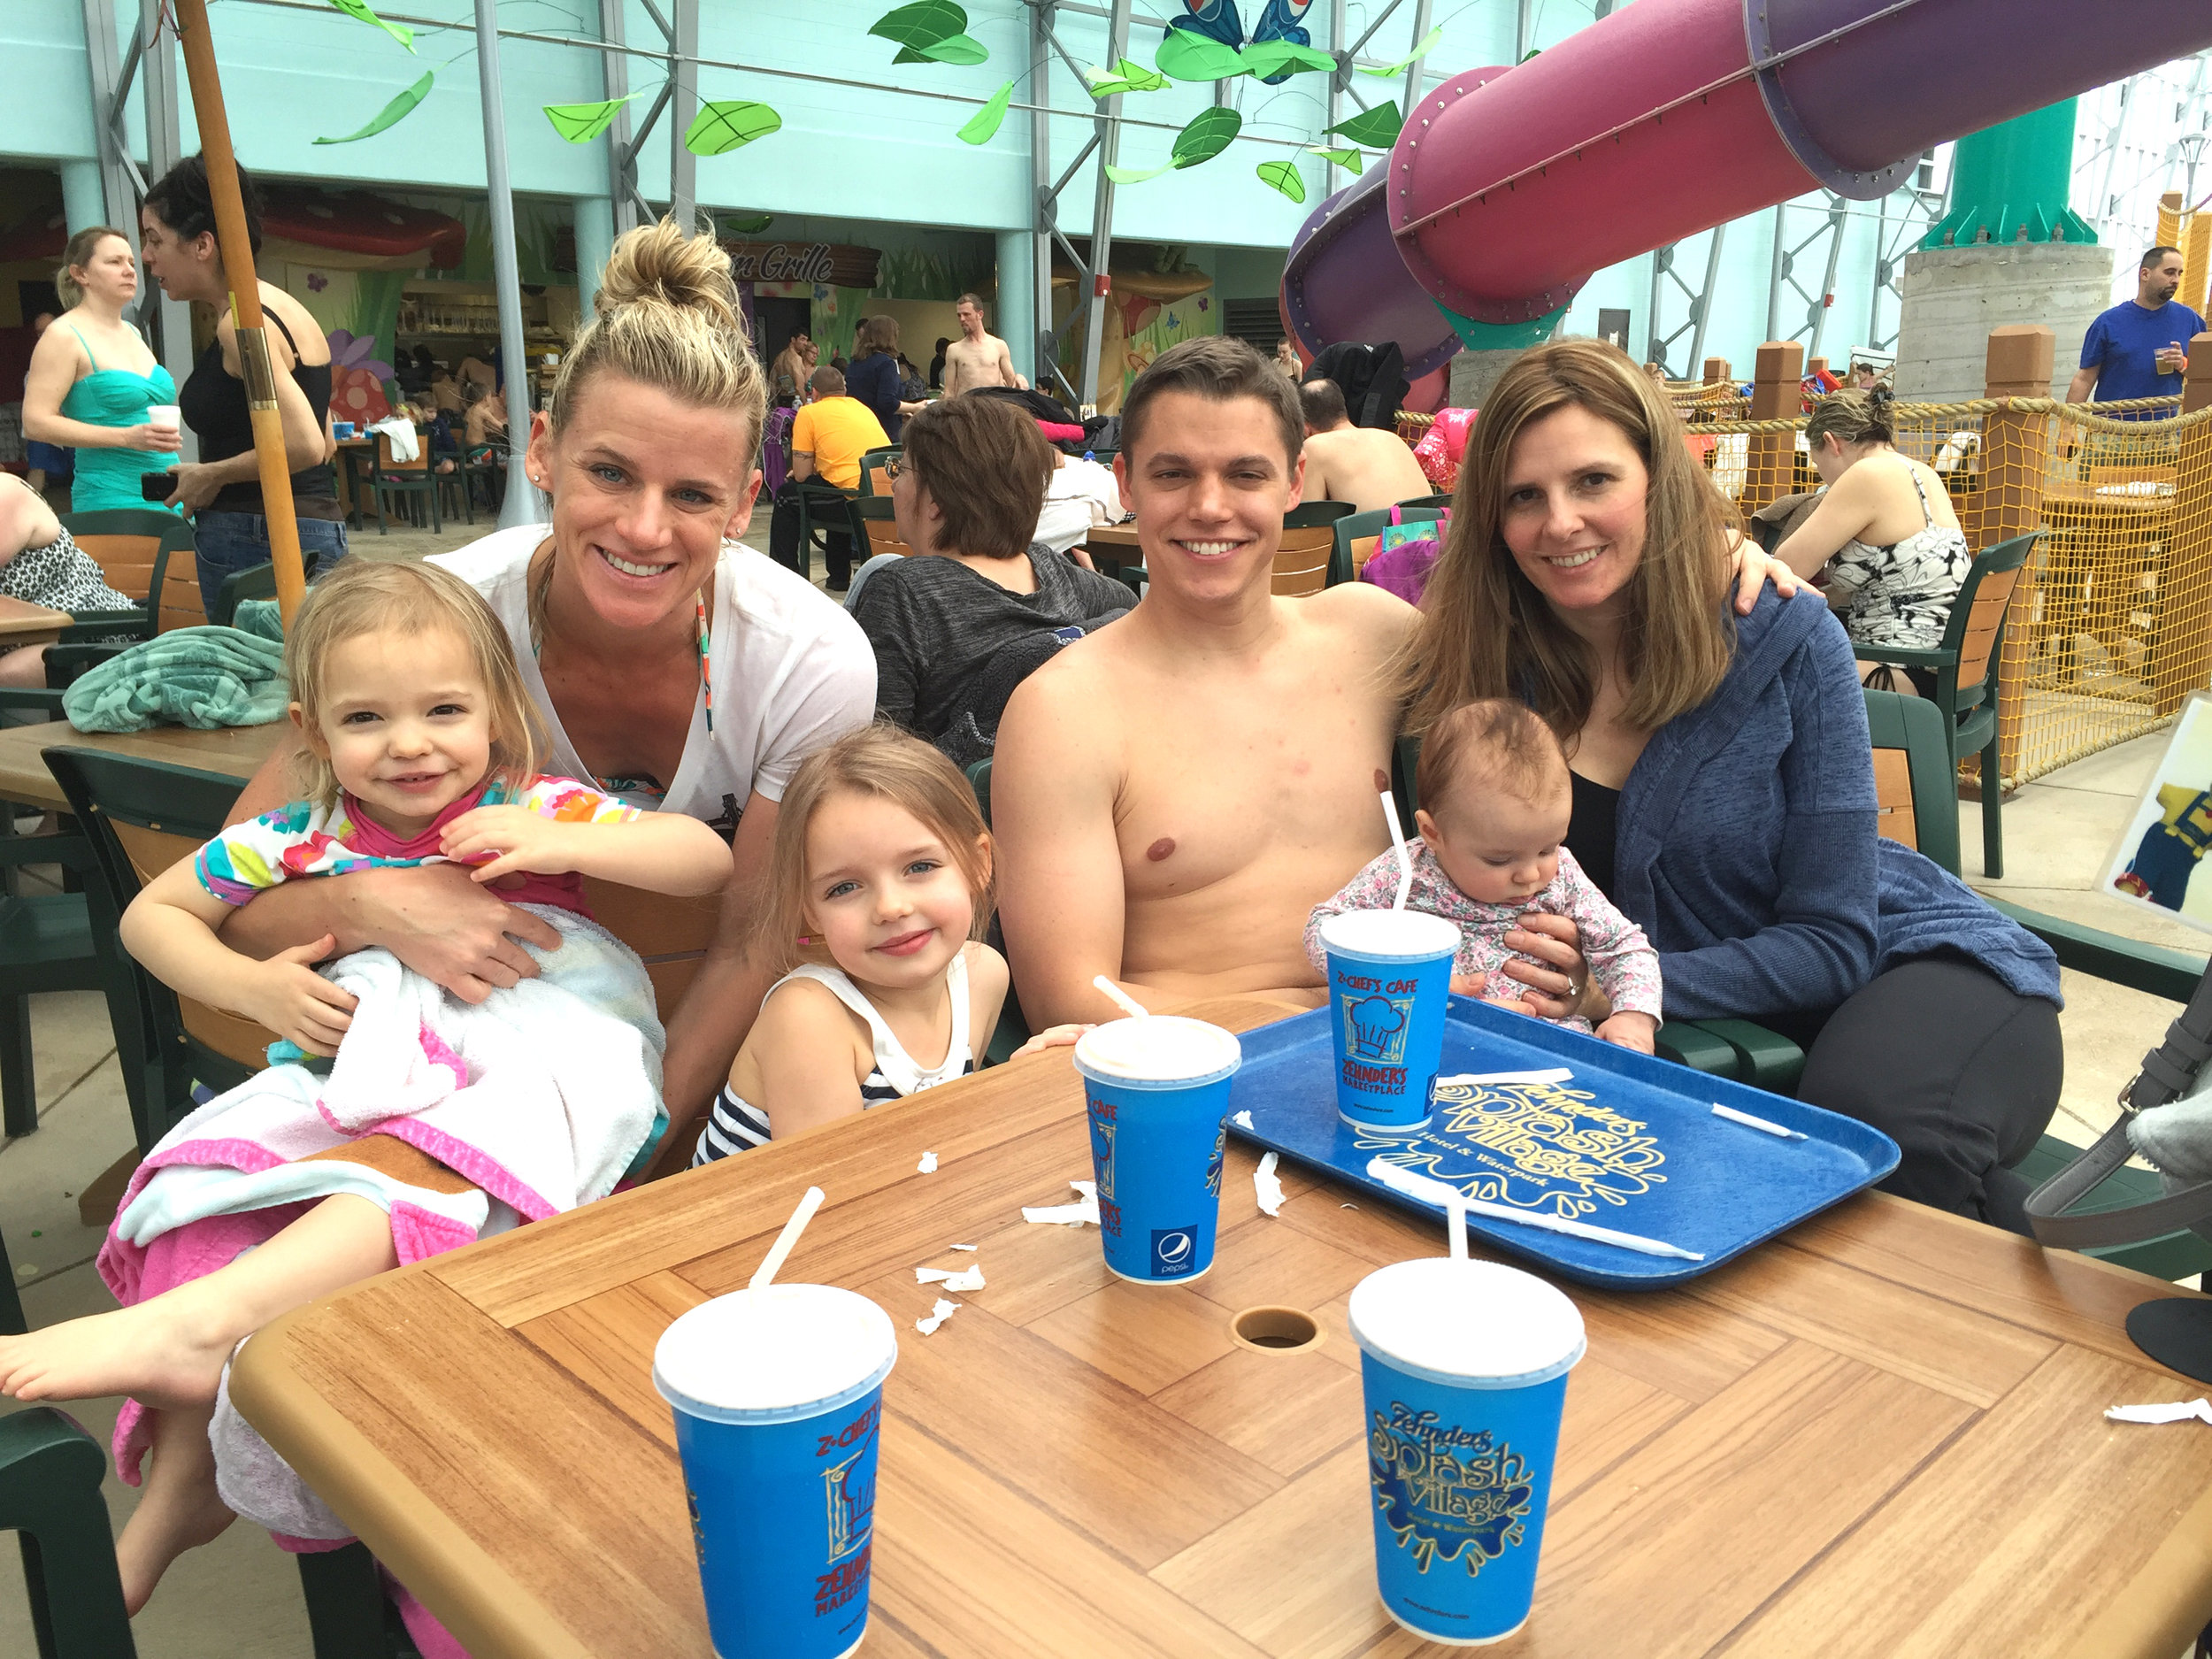 Water park adventures with nieces Vanessa, Natalie and Emily